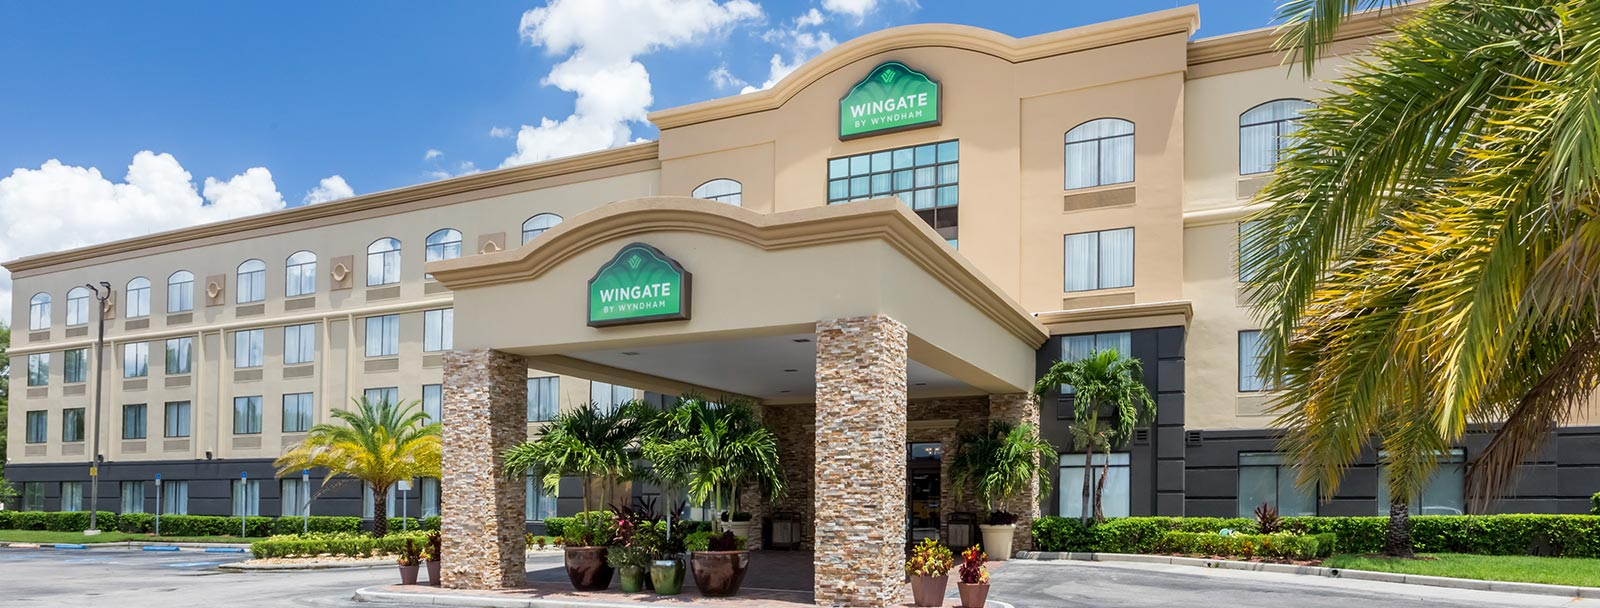 Wingate By Wyndham Universal Studios Convention Center Orlando